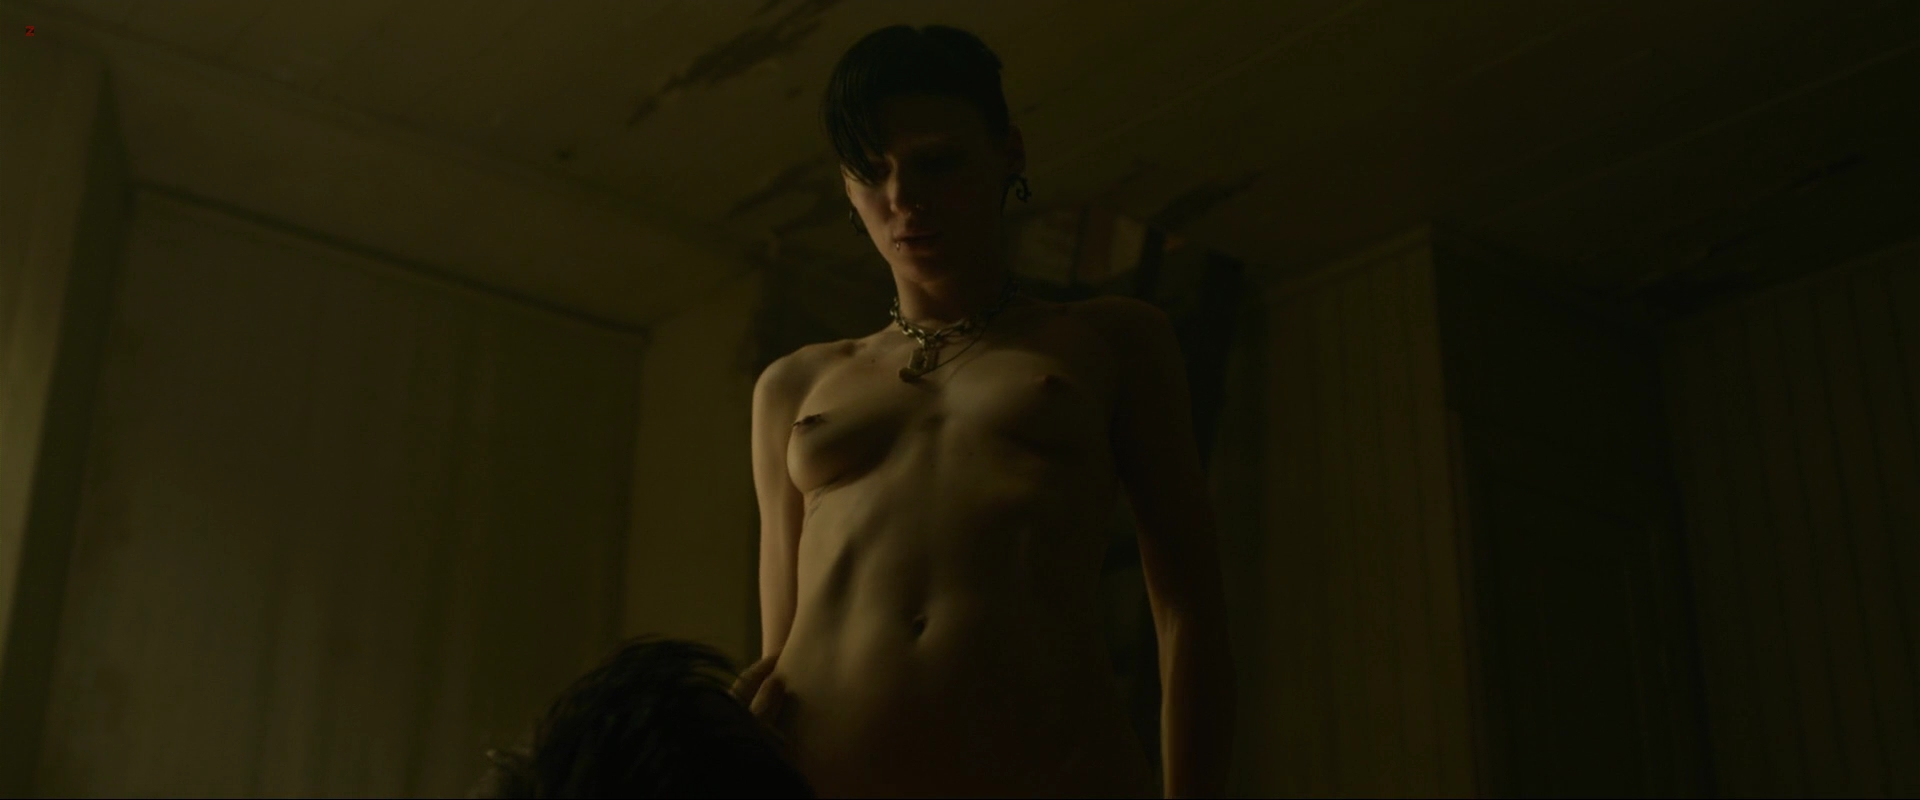 Rooney Mara naked rough sex oral and lesbian – The Girl with the Dragon Tattoo (2011) hd1080p